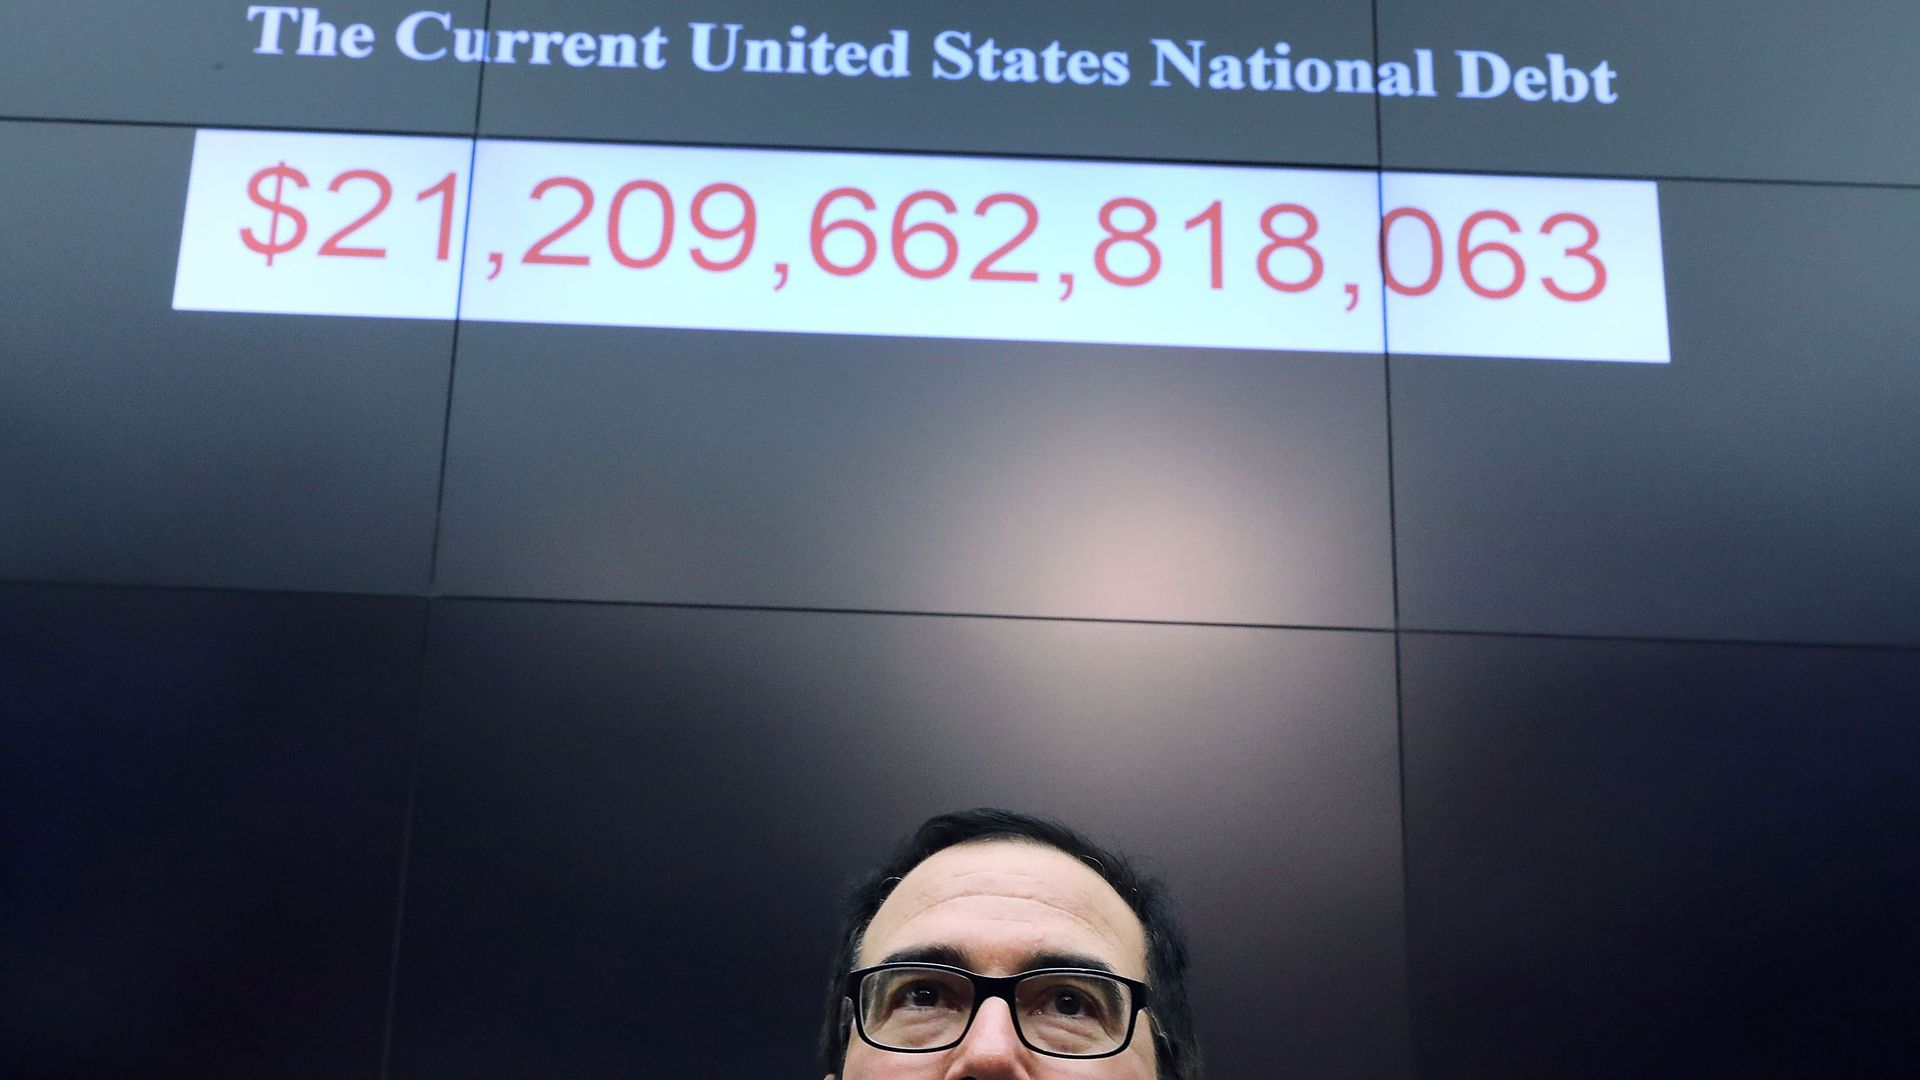 Steven Mnuchin standing under a sign that details the U.S. National Debt.